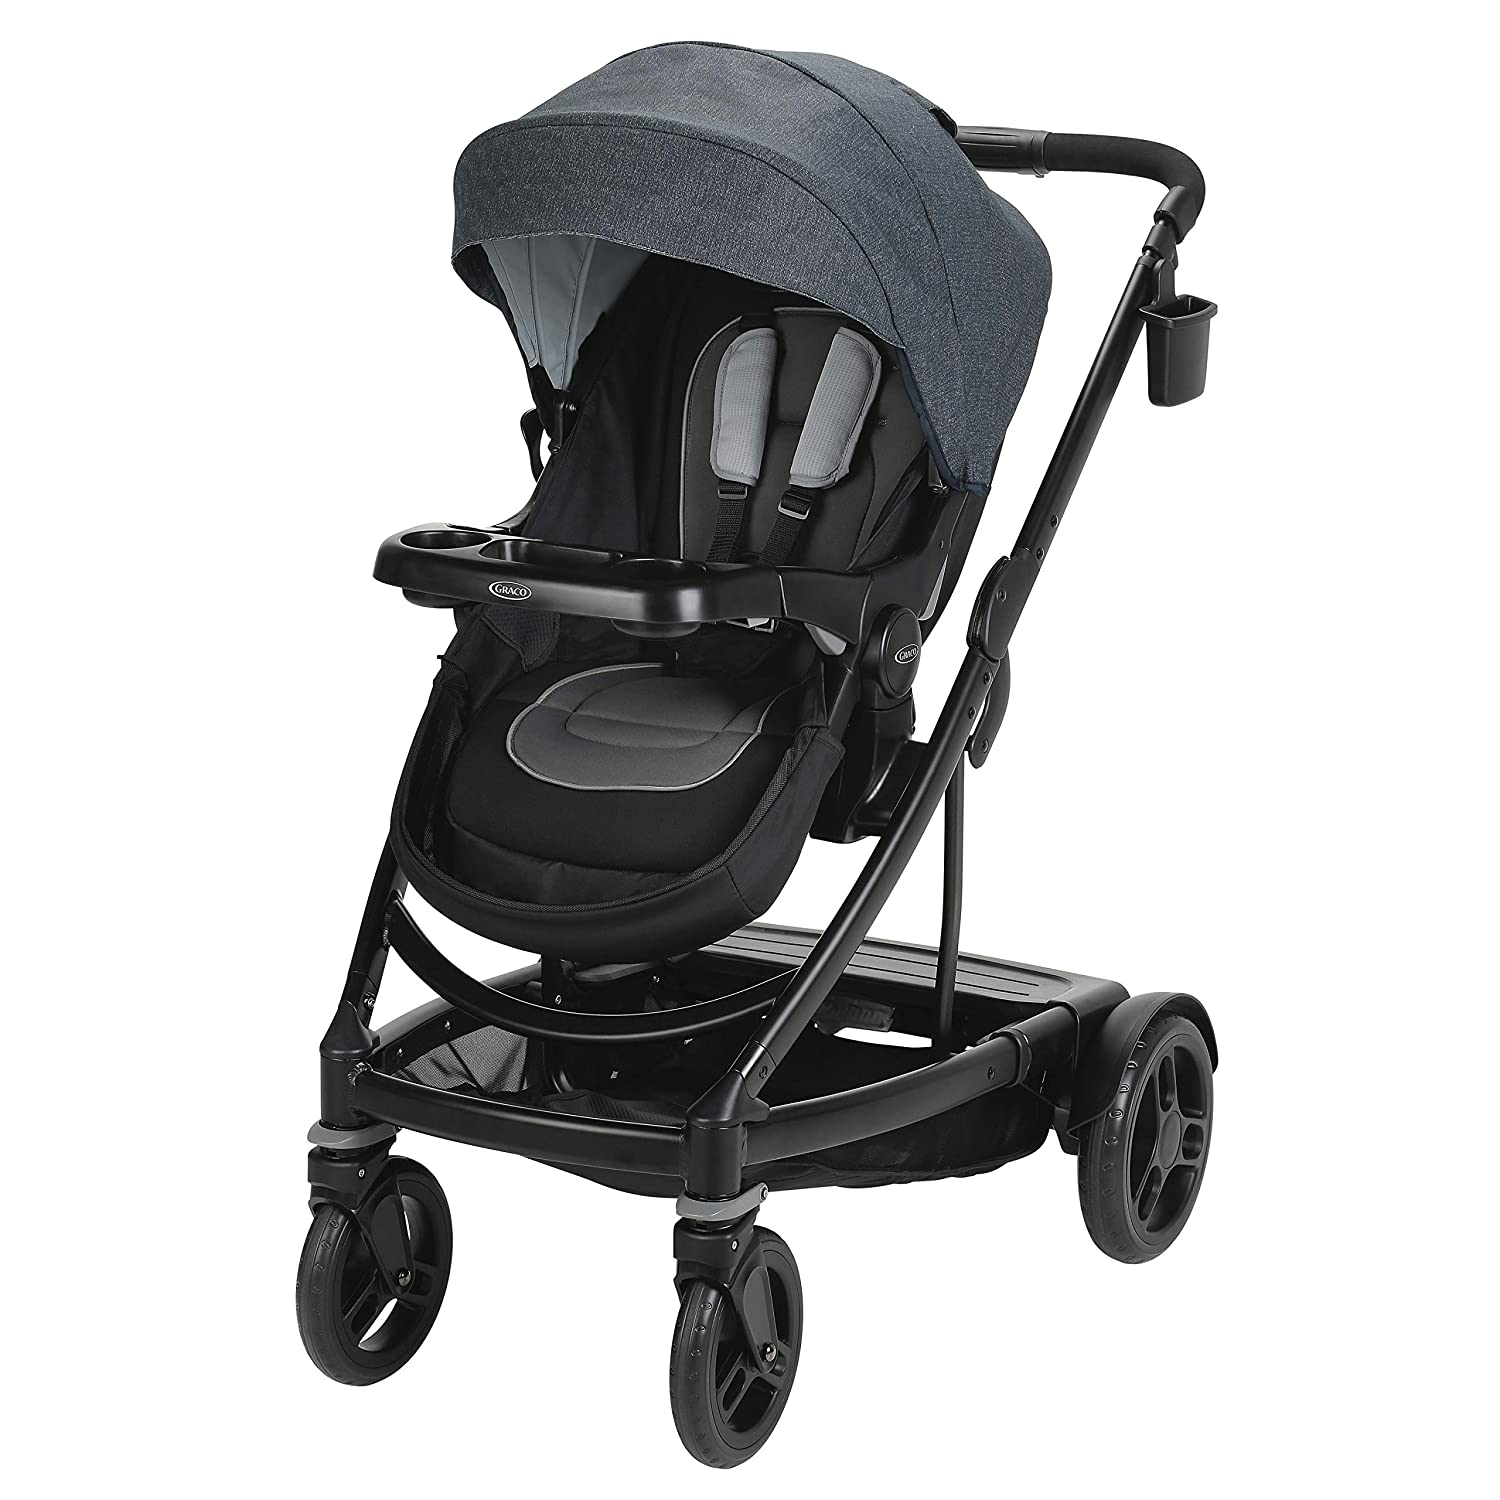 Graco Uno2Duo Travel System Includes UNO2DUO Stroller and SnugRide SnugLock35 Infant Car Seat, Goes from Single to Double Stroller, Hazel Pink Lining